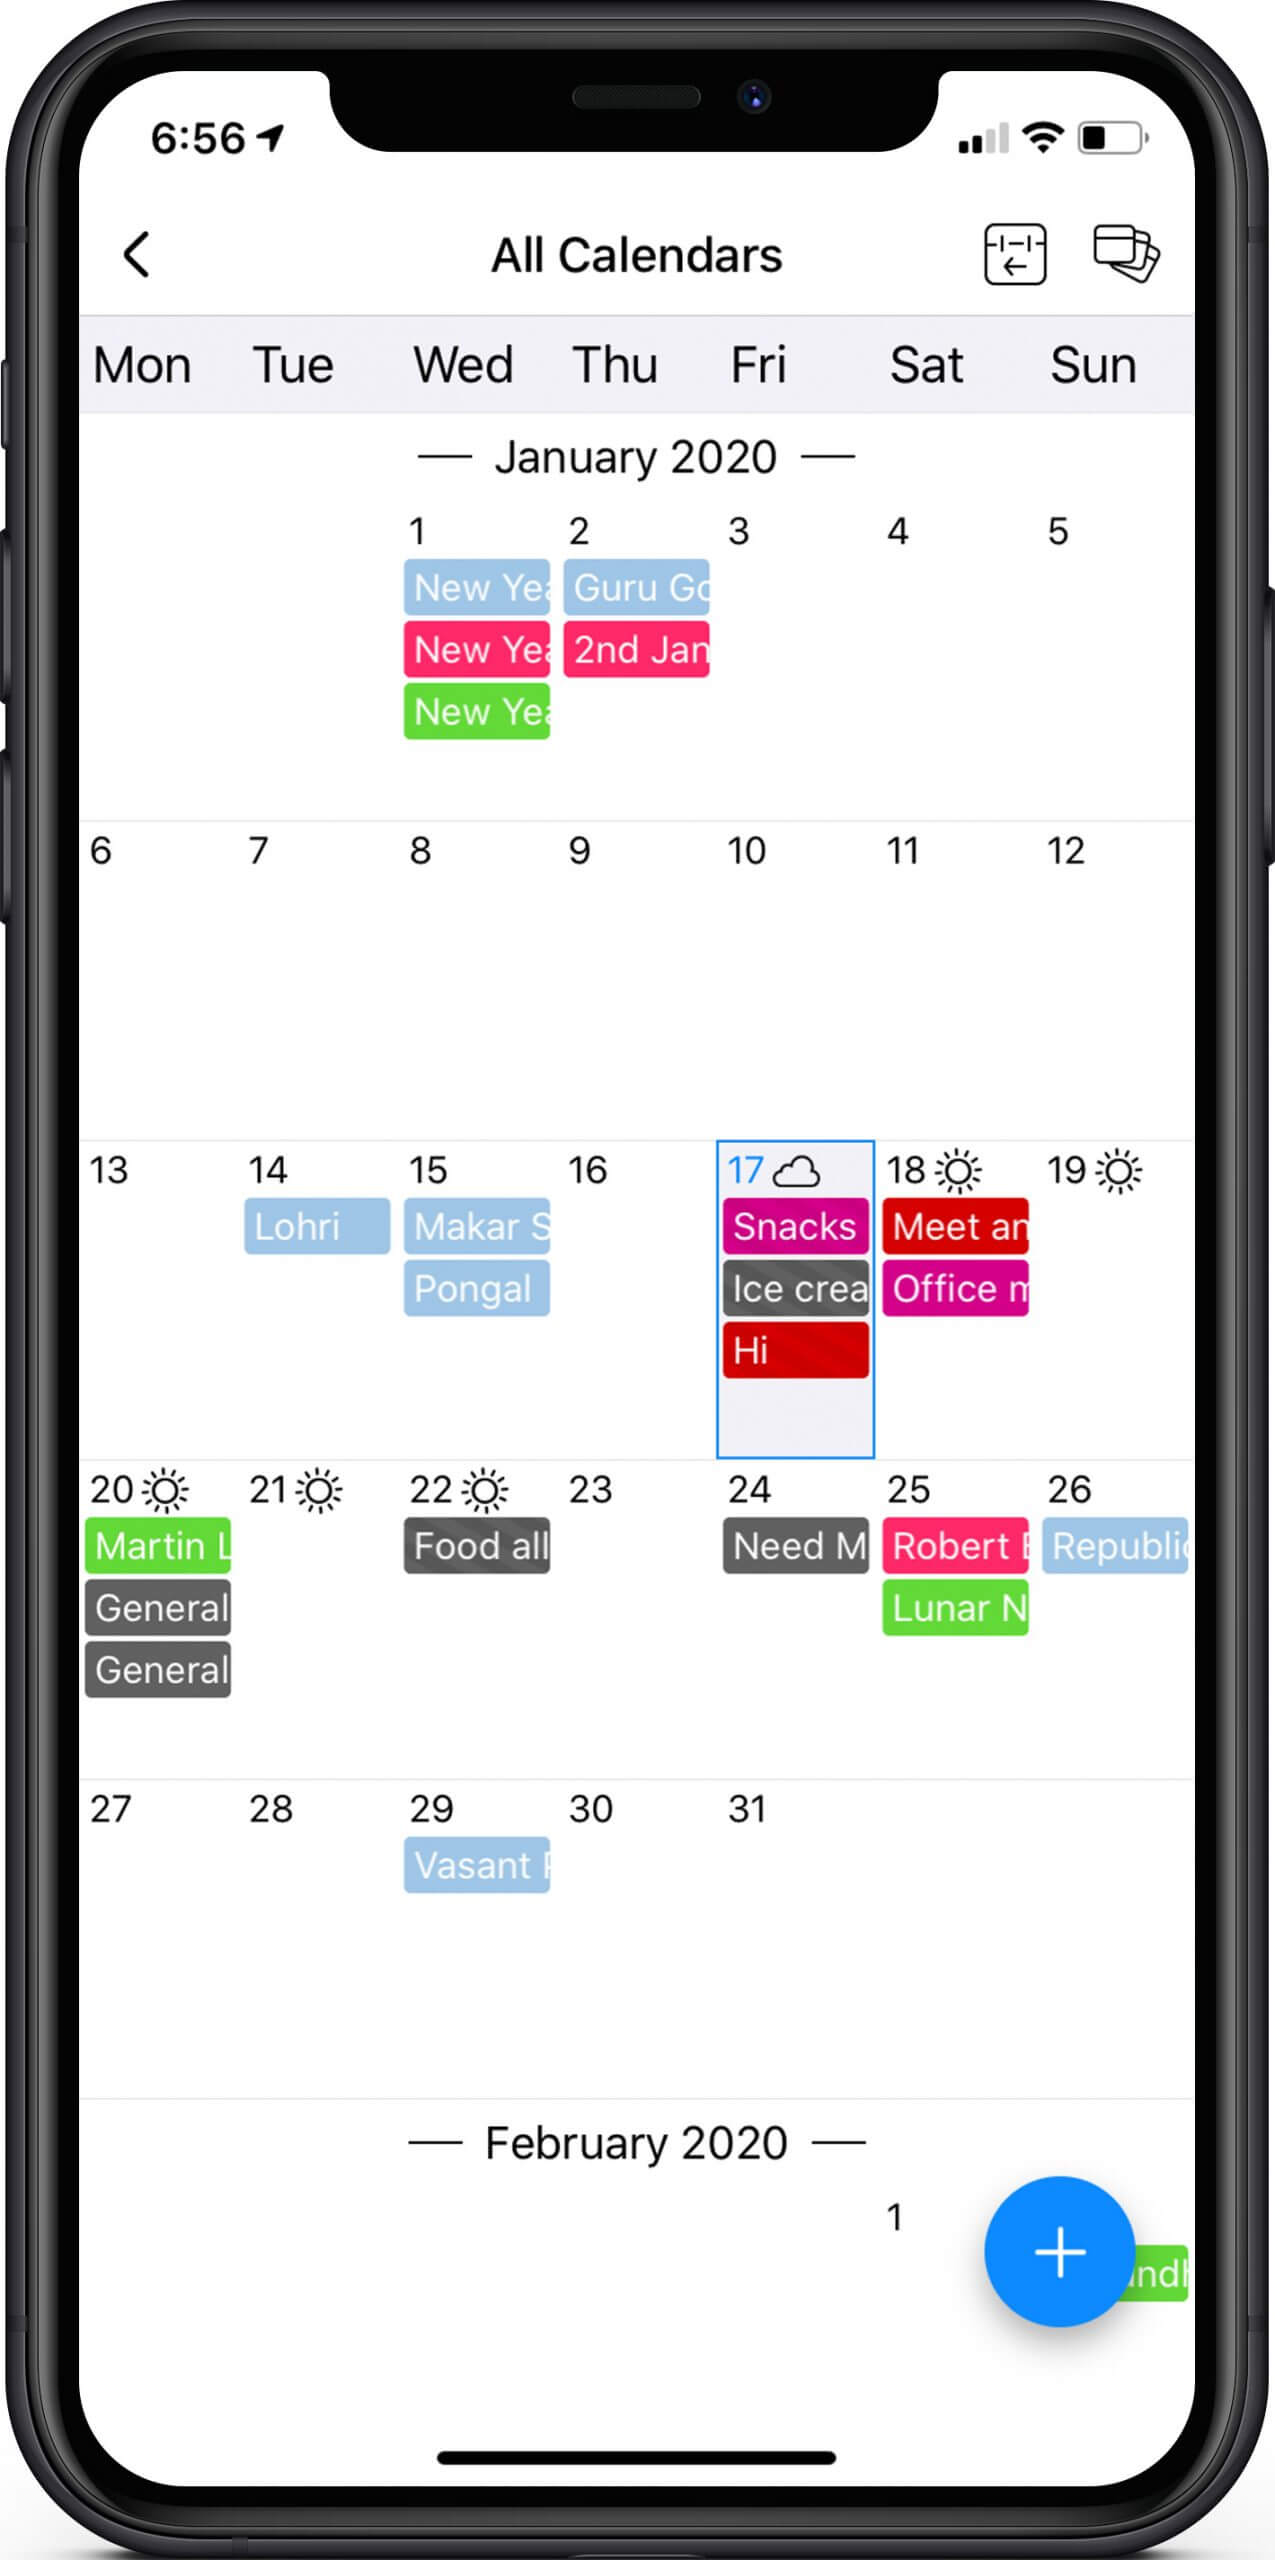 Tap on Event to View Full List in GroupCal App on iPhone